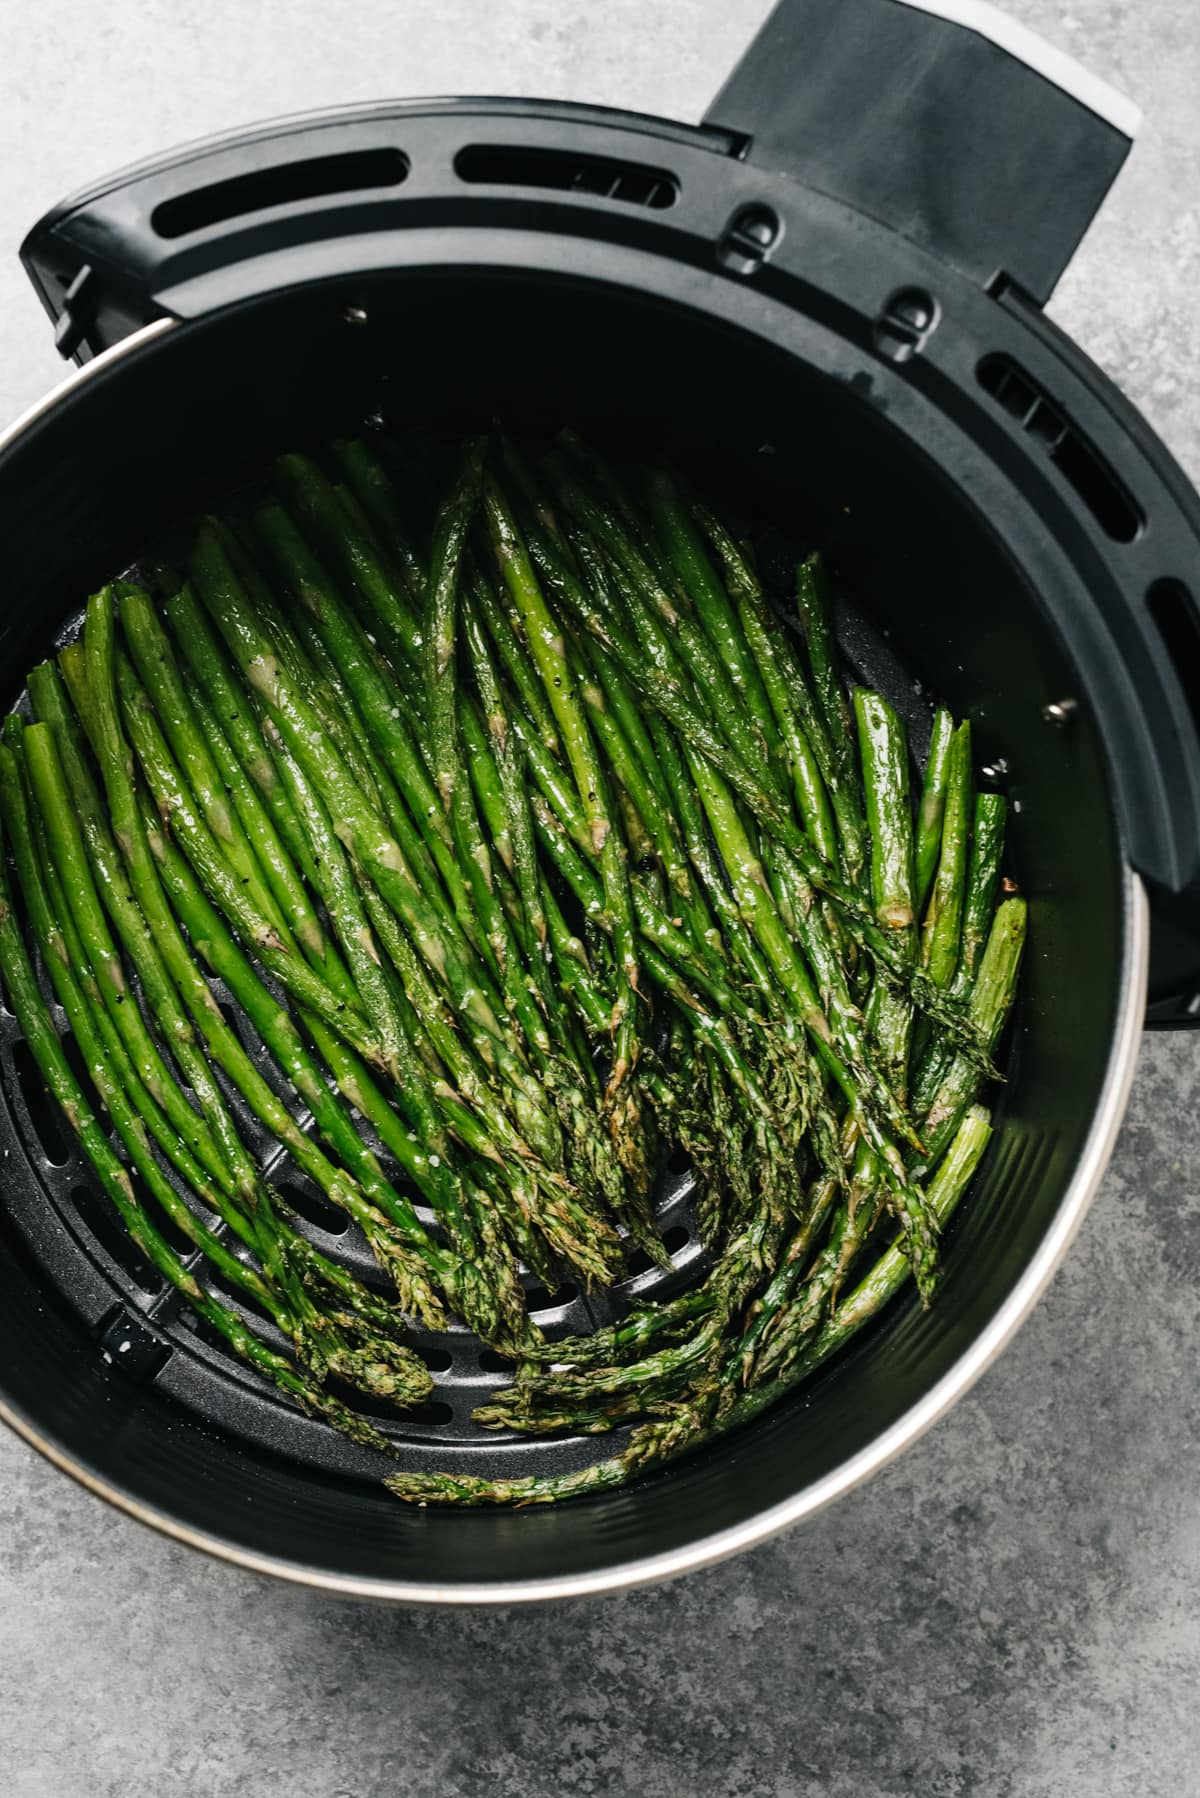 From overhead, cooked asparagus spears in the basket of an air fryer.